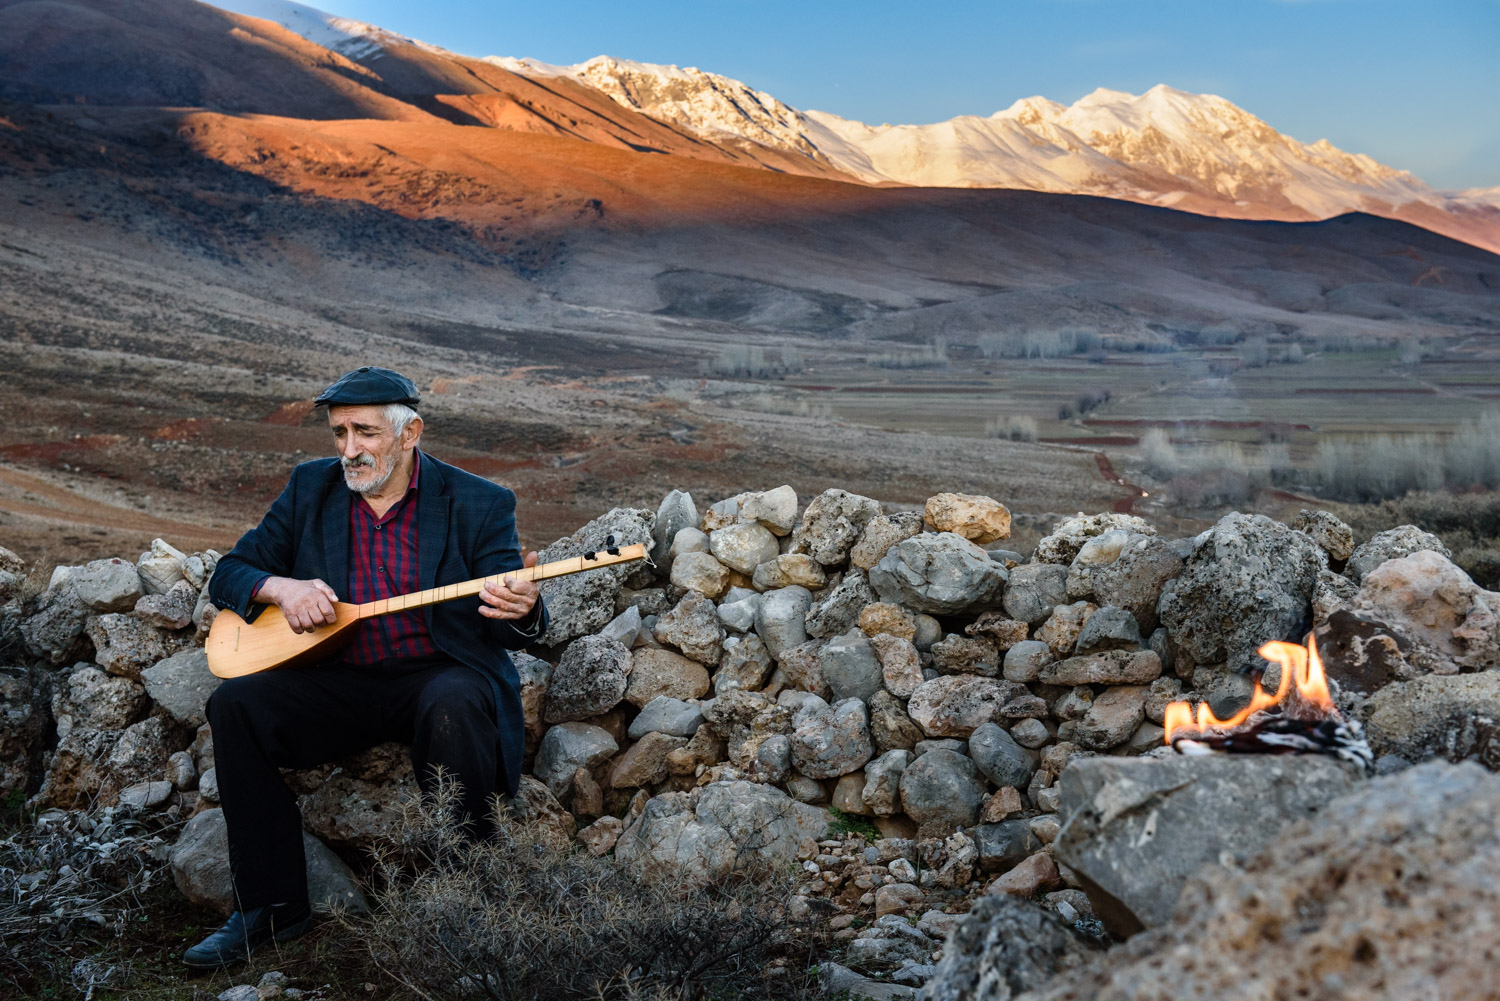 The Zeynal Dede, a highly respected Alevi religious leader, performs a prayer ceremony on a sacred hill in the Munzur Valley.